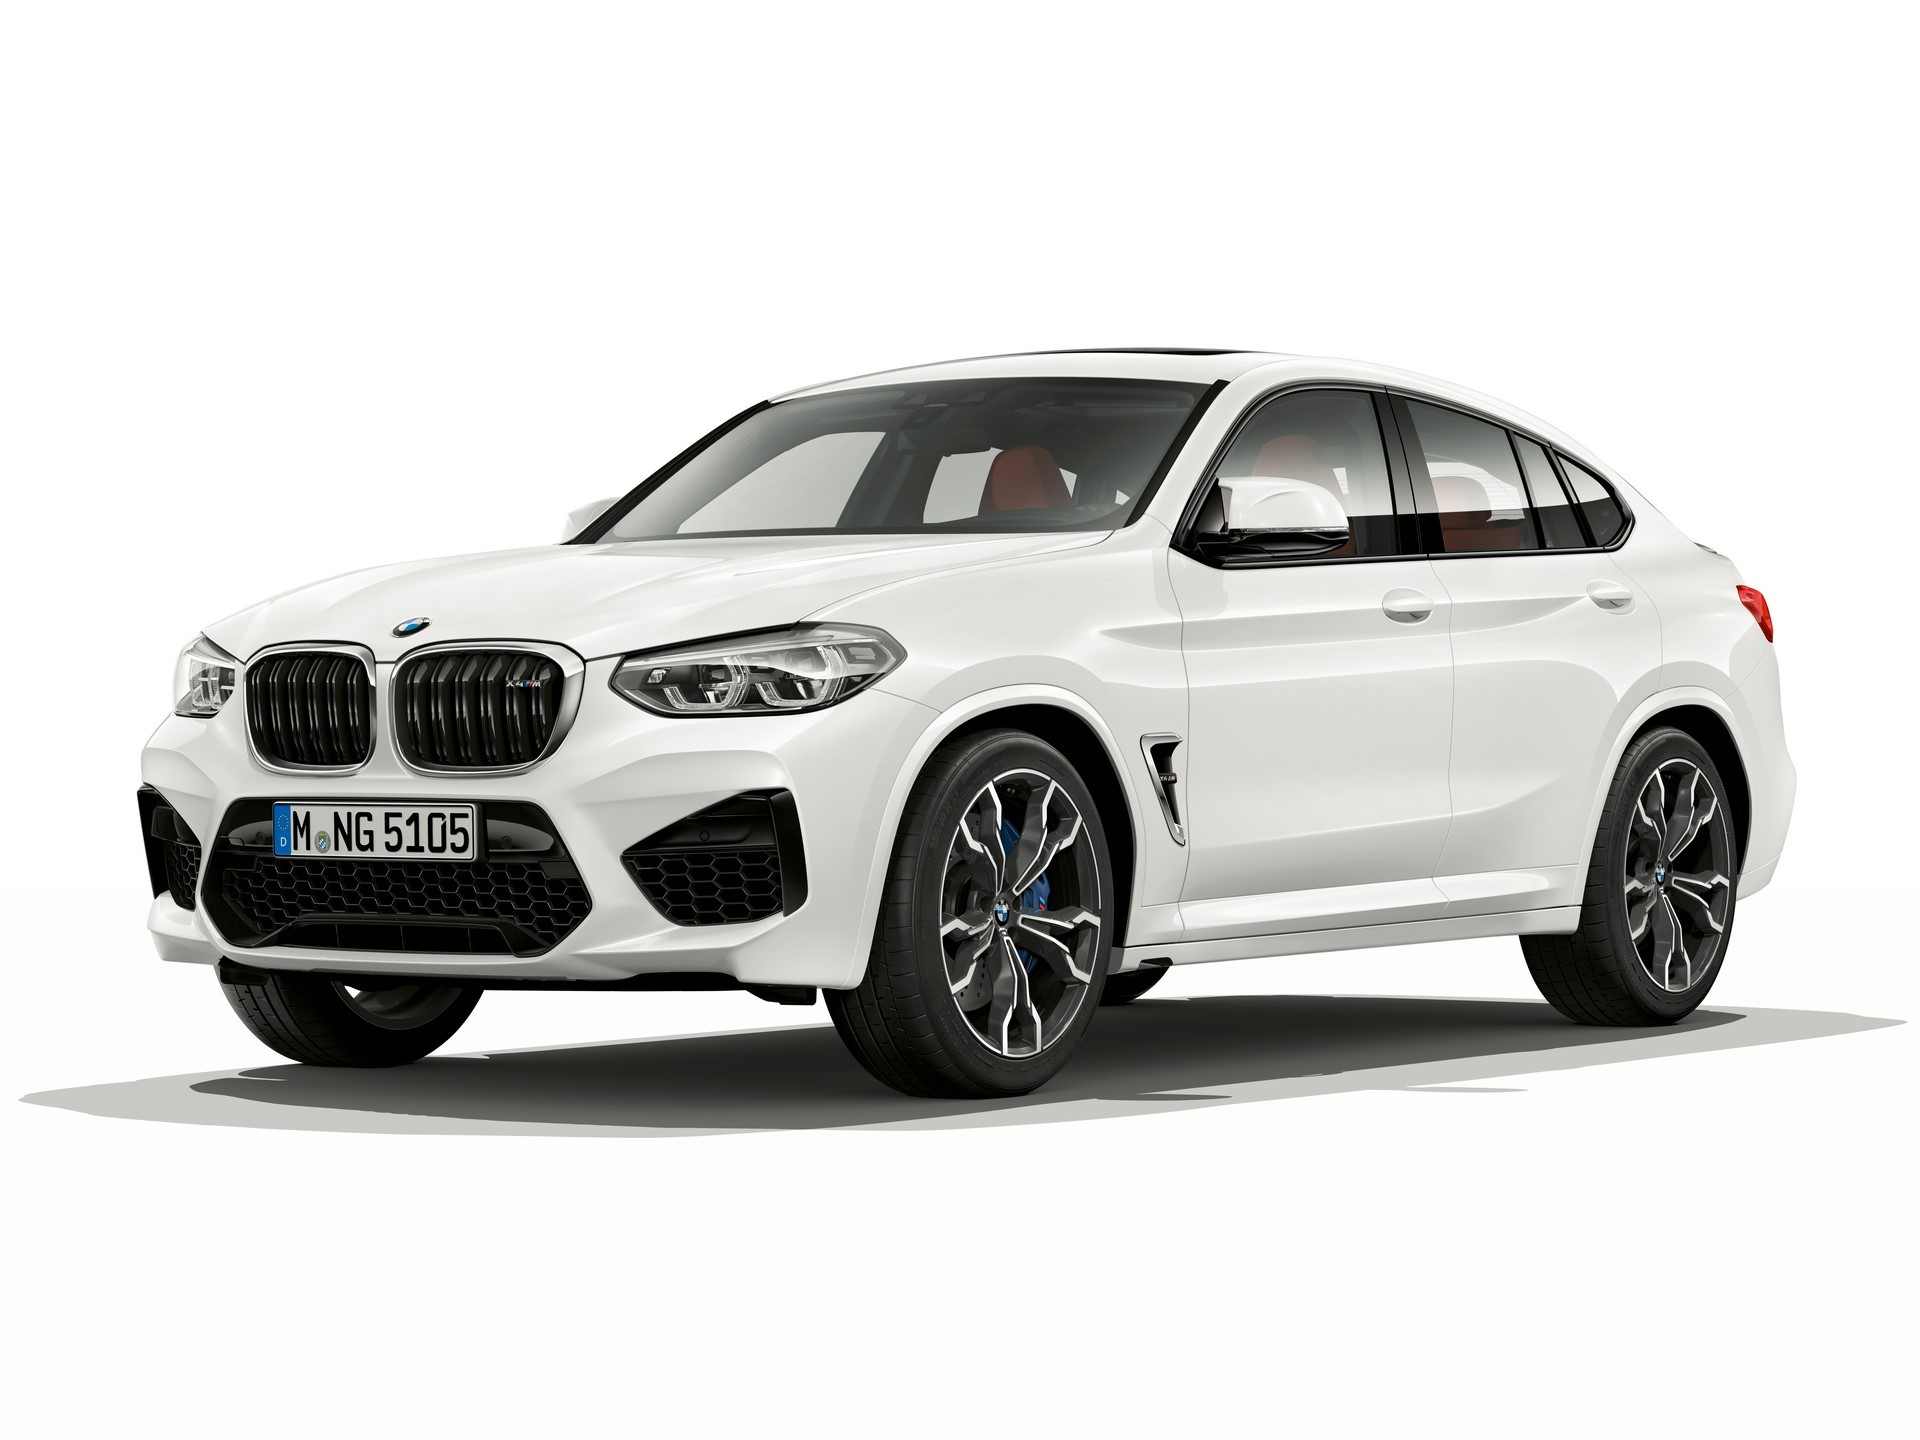 BMW X3 M and X4 M 2019 (171)